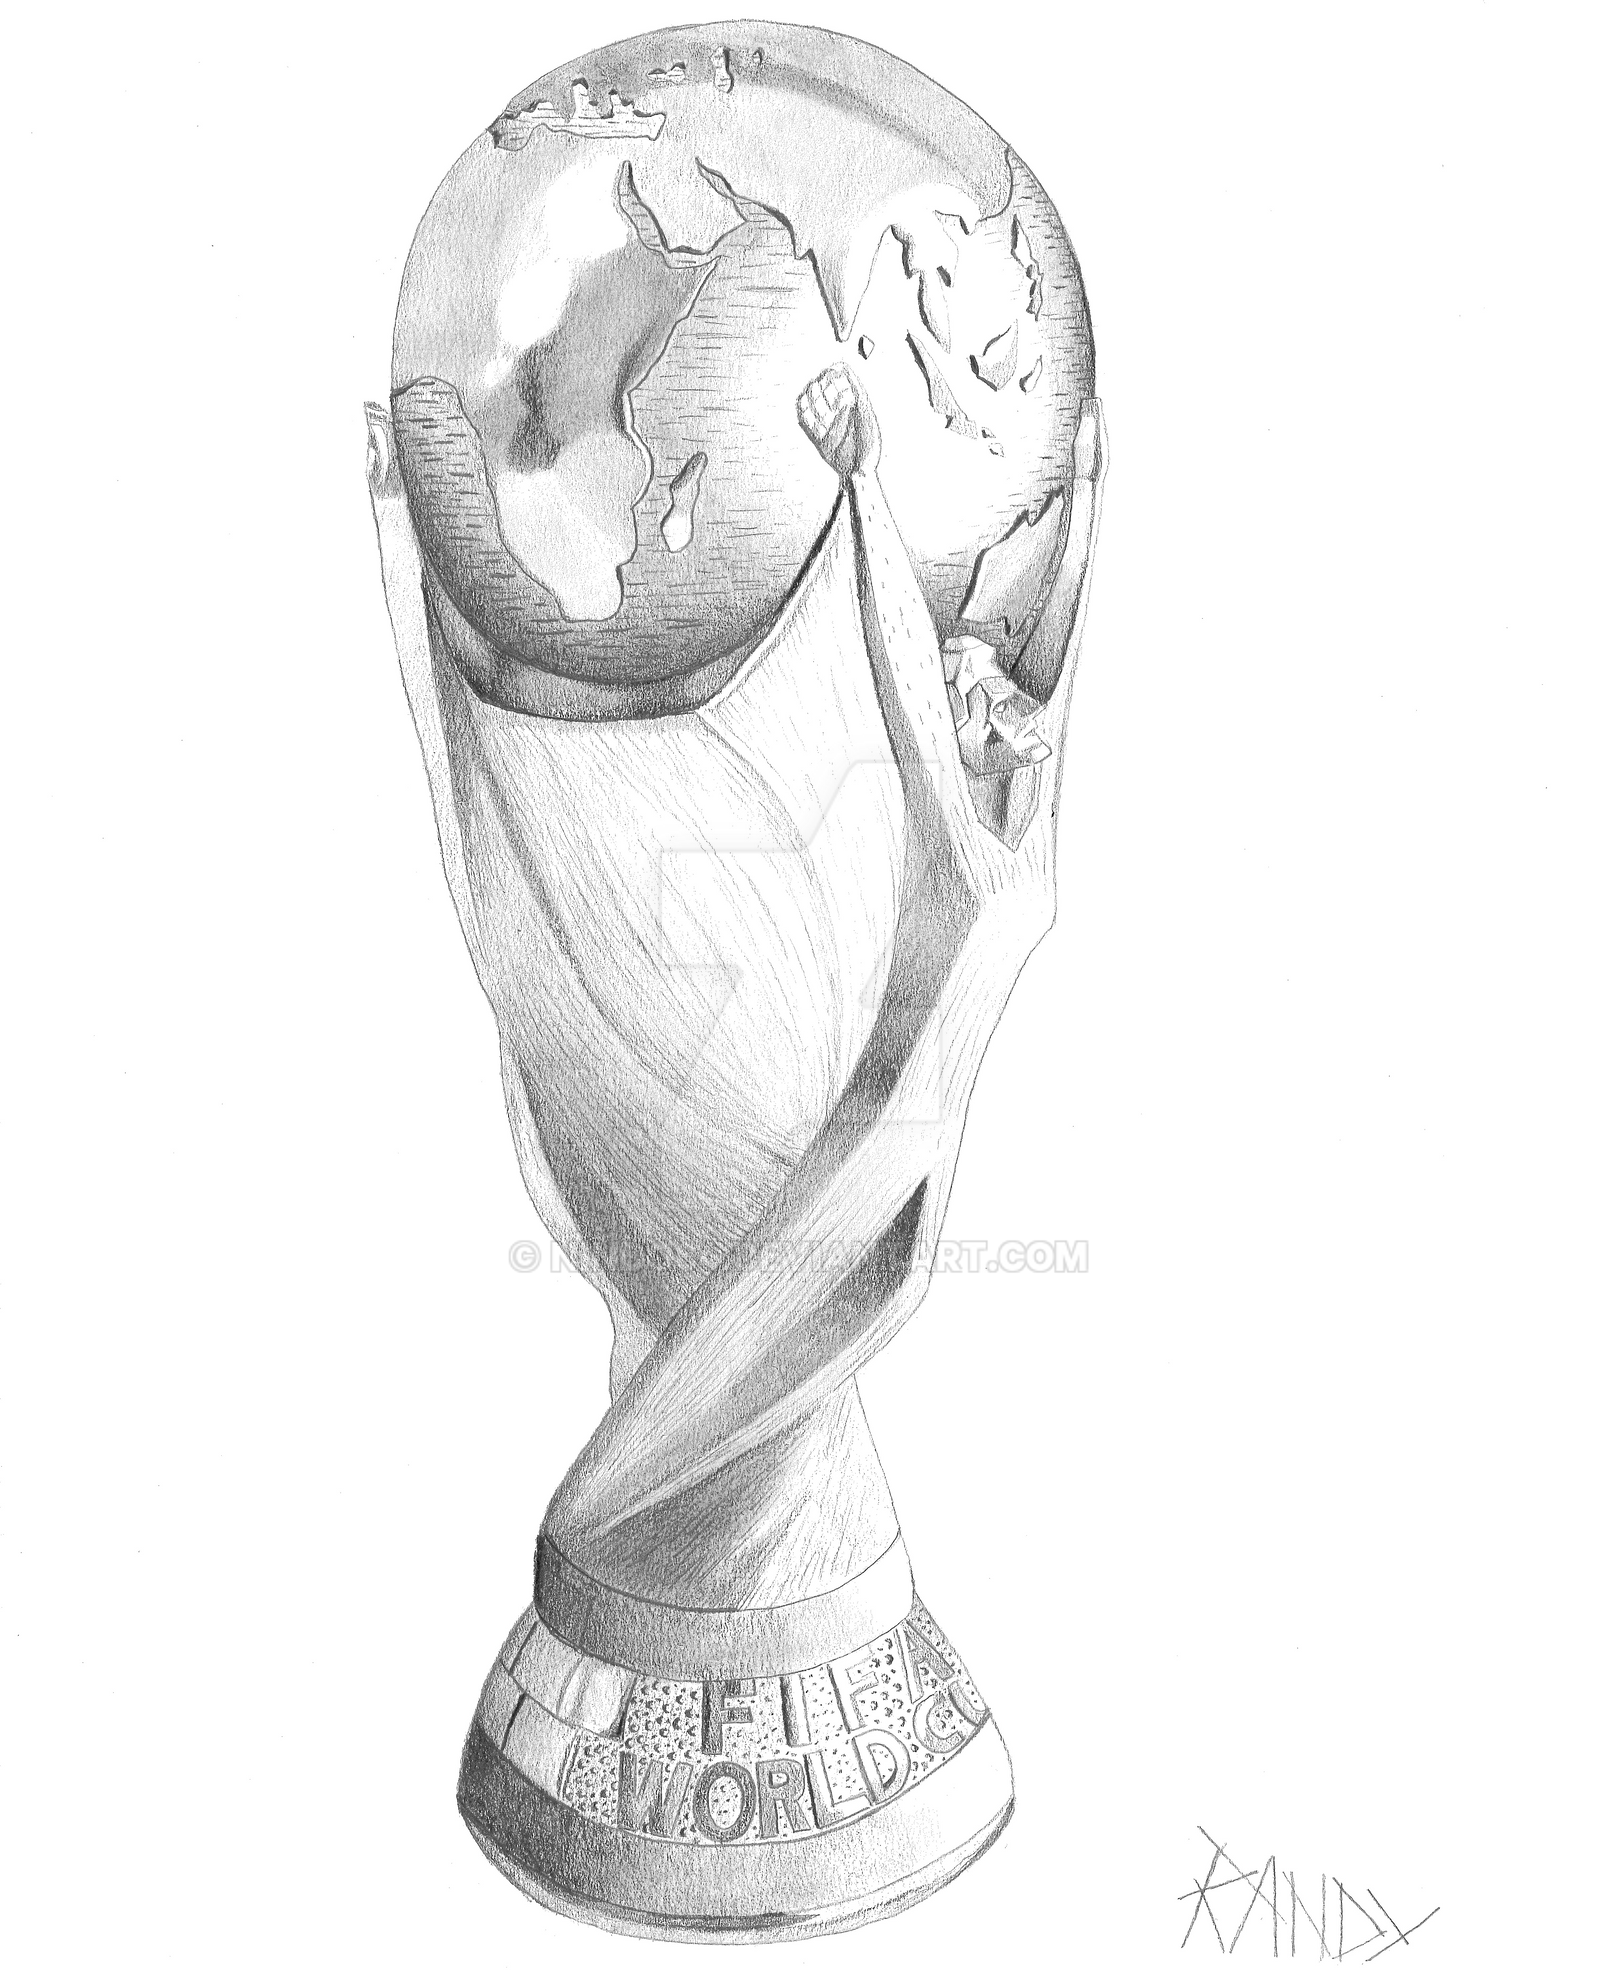 world_cup_trophy_by_nindo64-dchdt6s.png